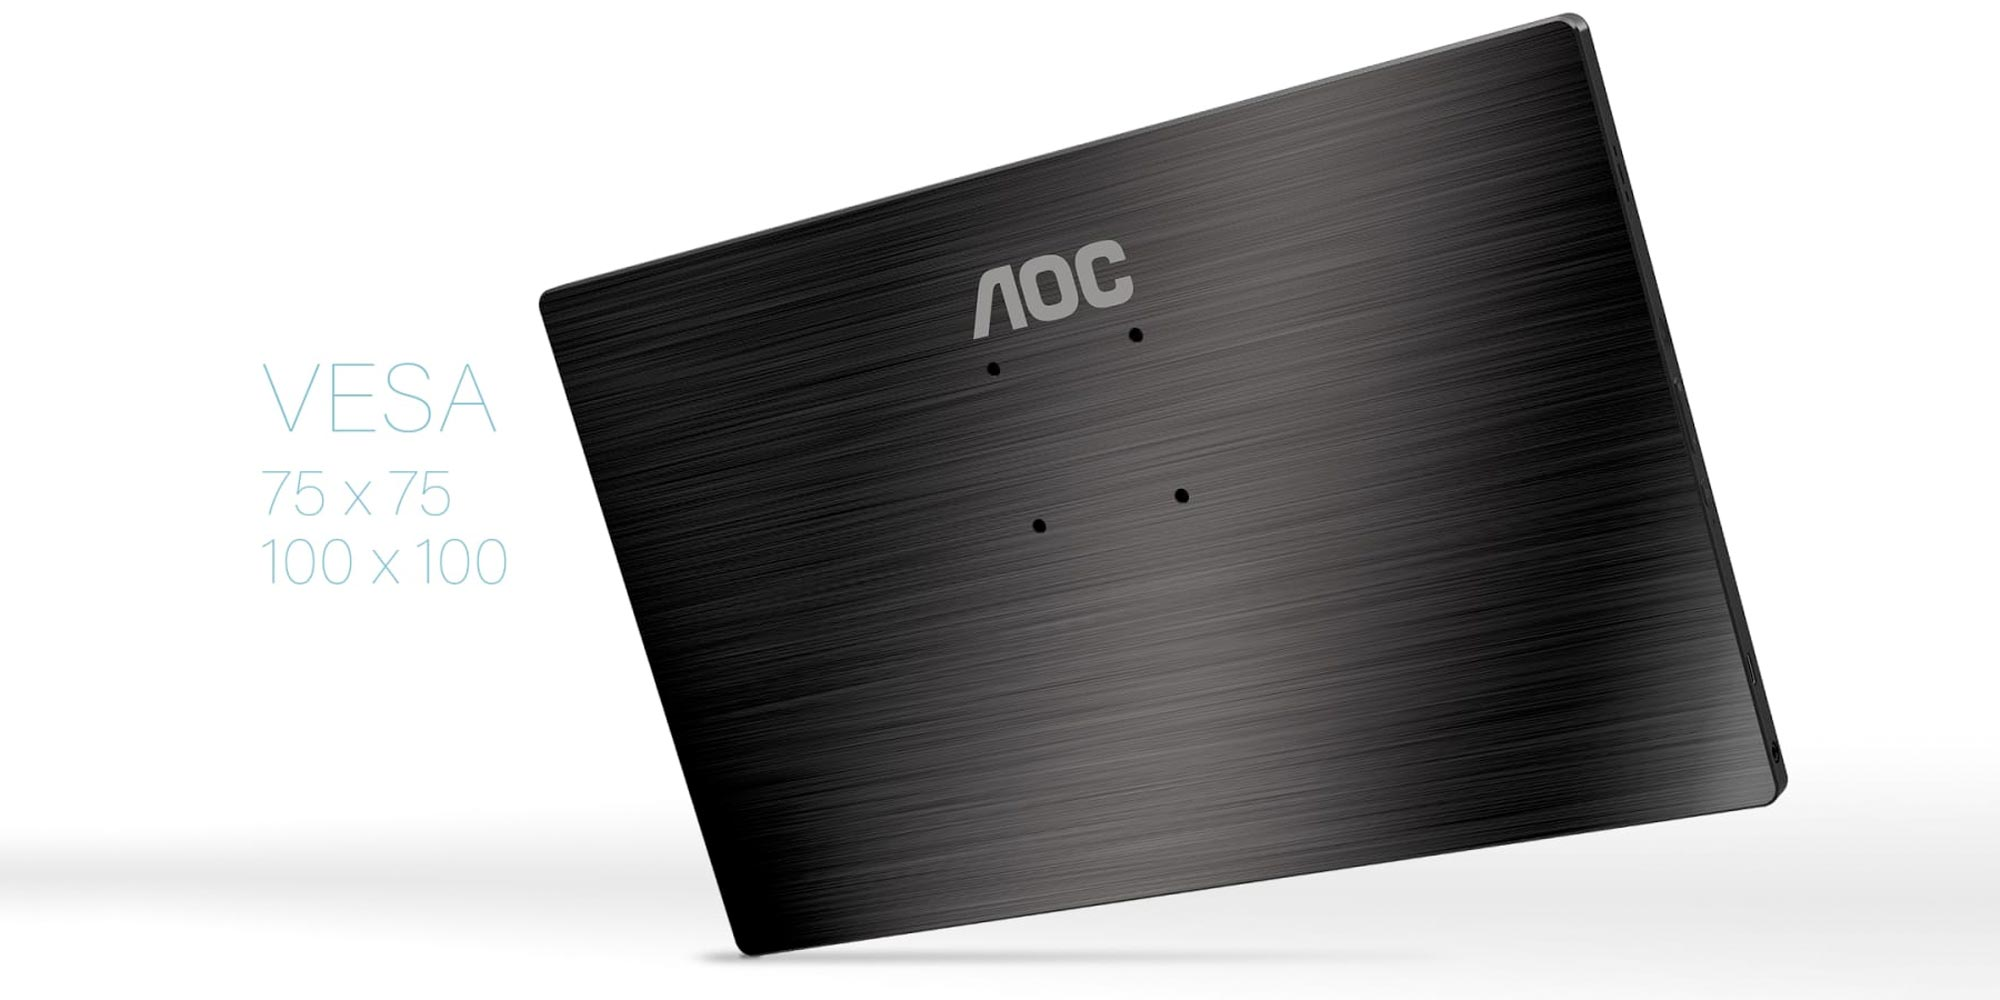 AOC USB-C monitor